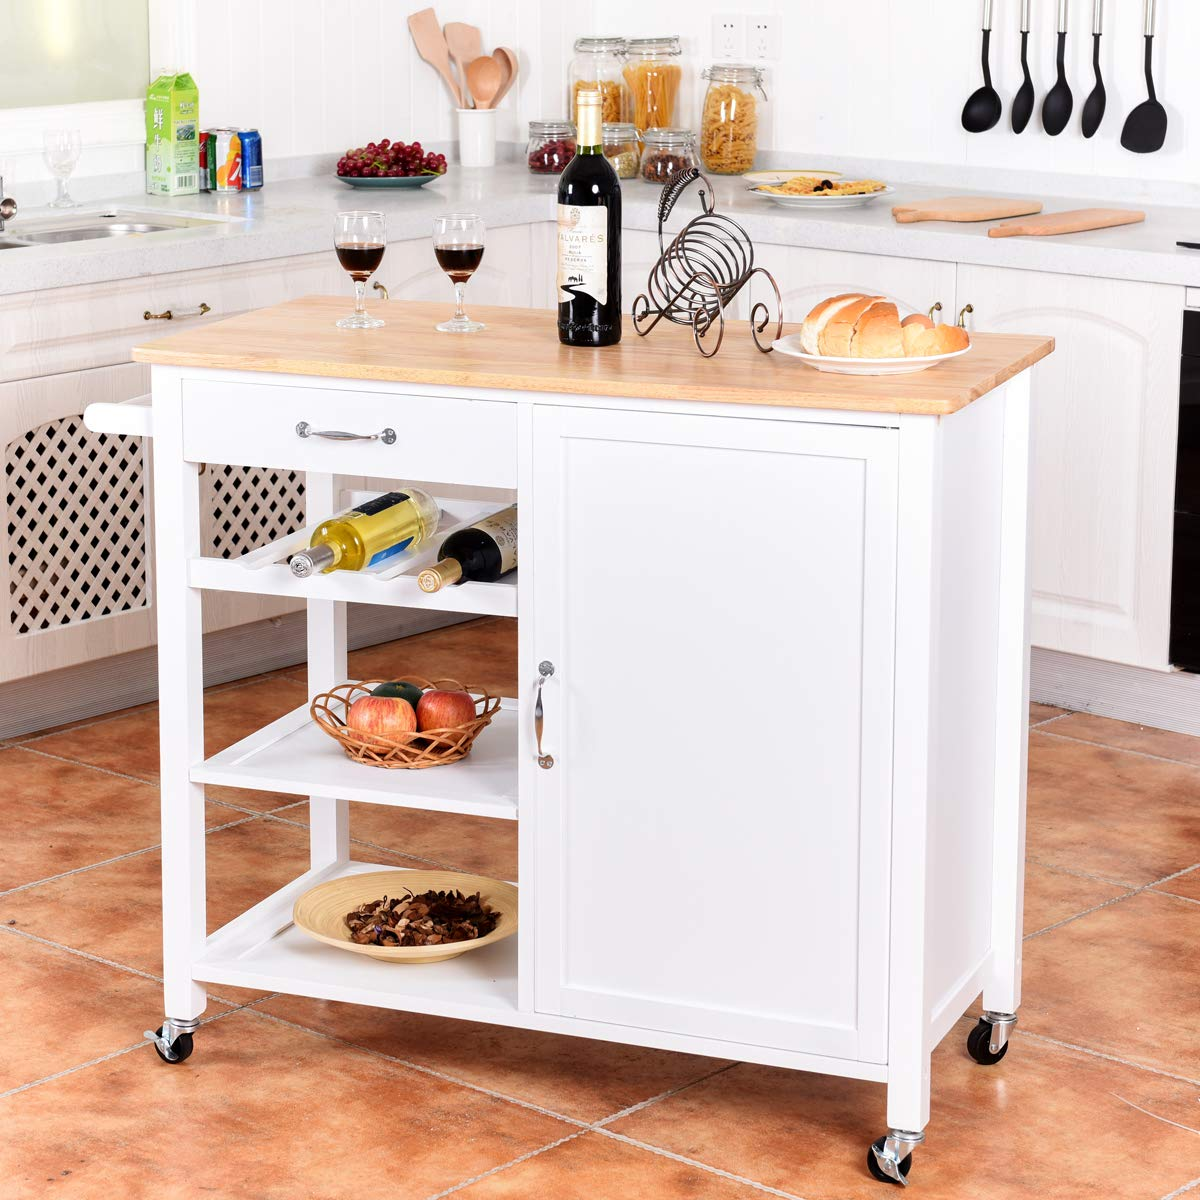 Giantex Kitchen Trolley Cart w/Wheels Rolling Storage Cabinet Wooden Table Multi-Function Island Cart Kitchen Truck (White) by Giantex (Image #3)